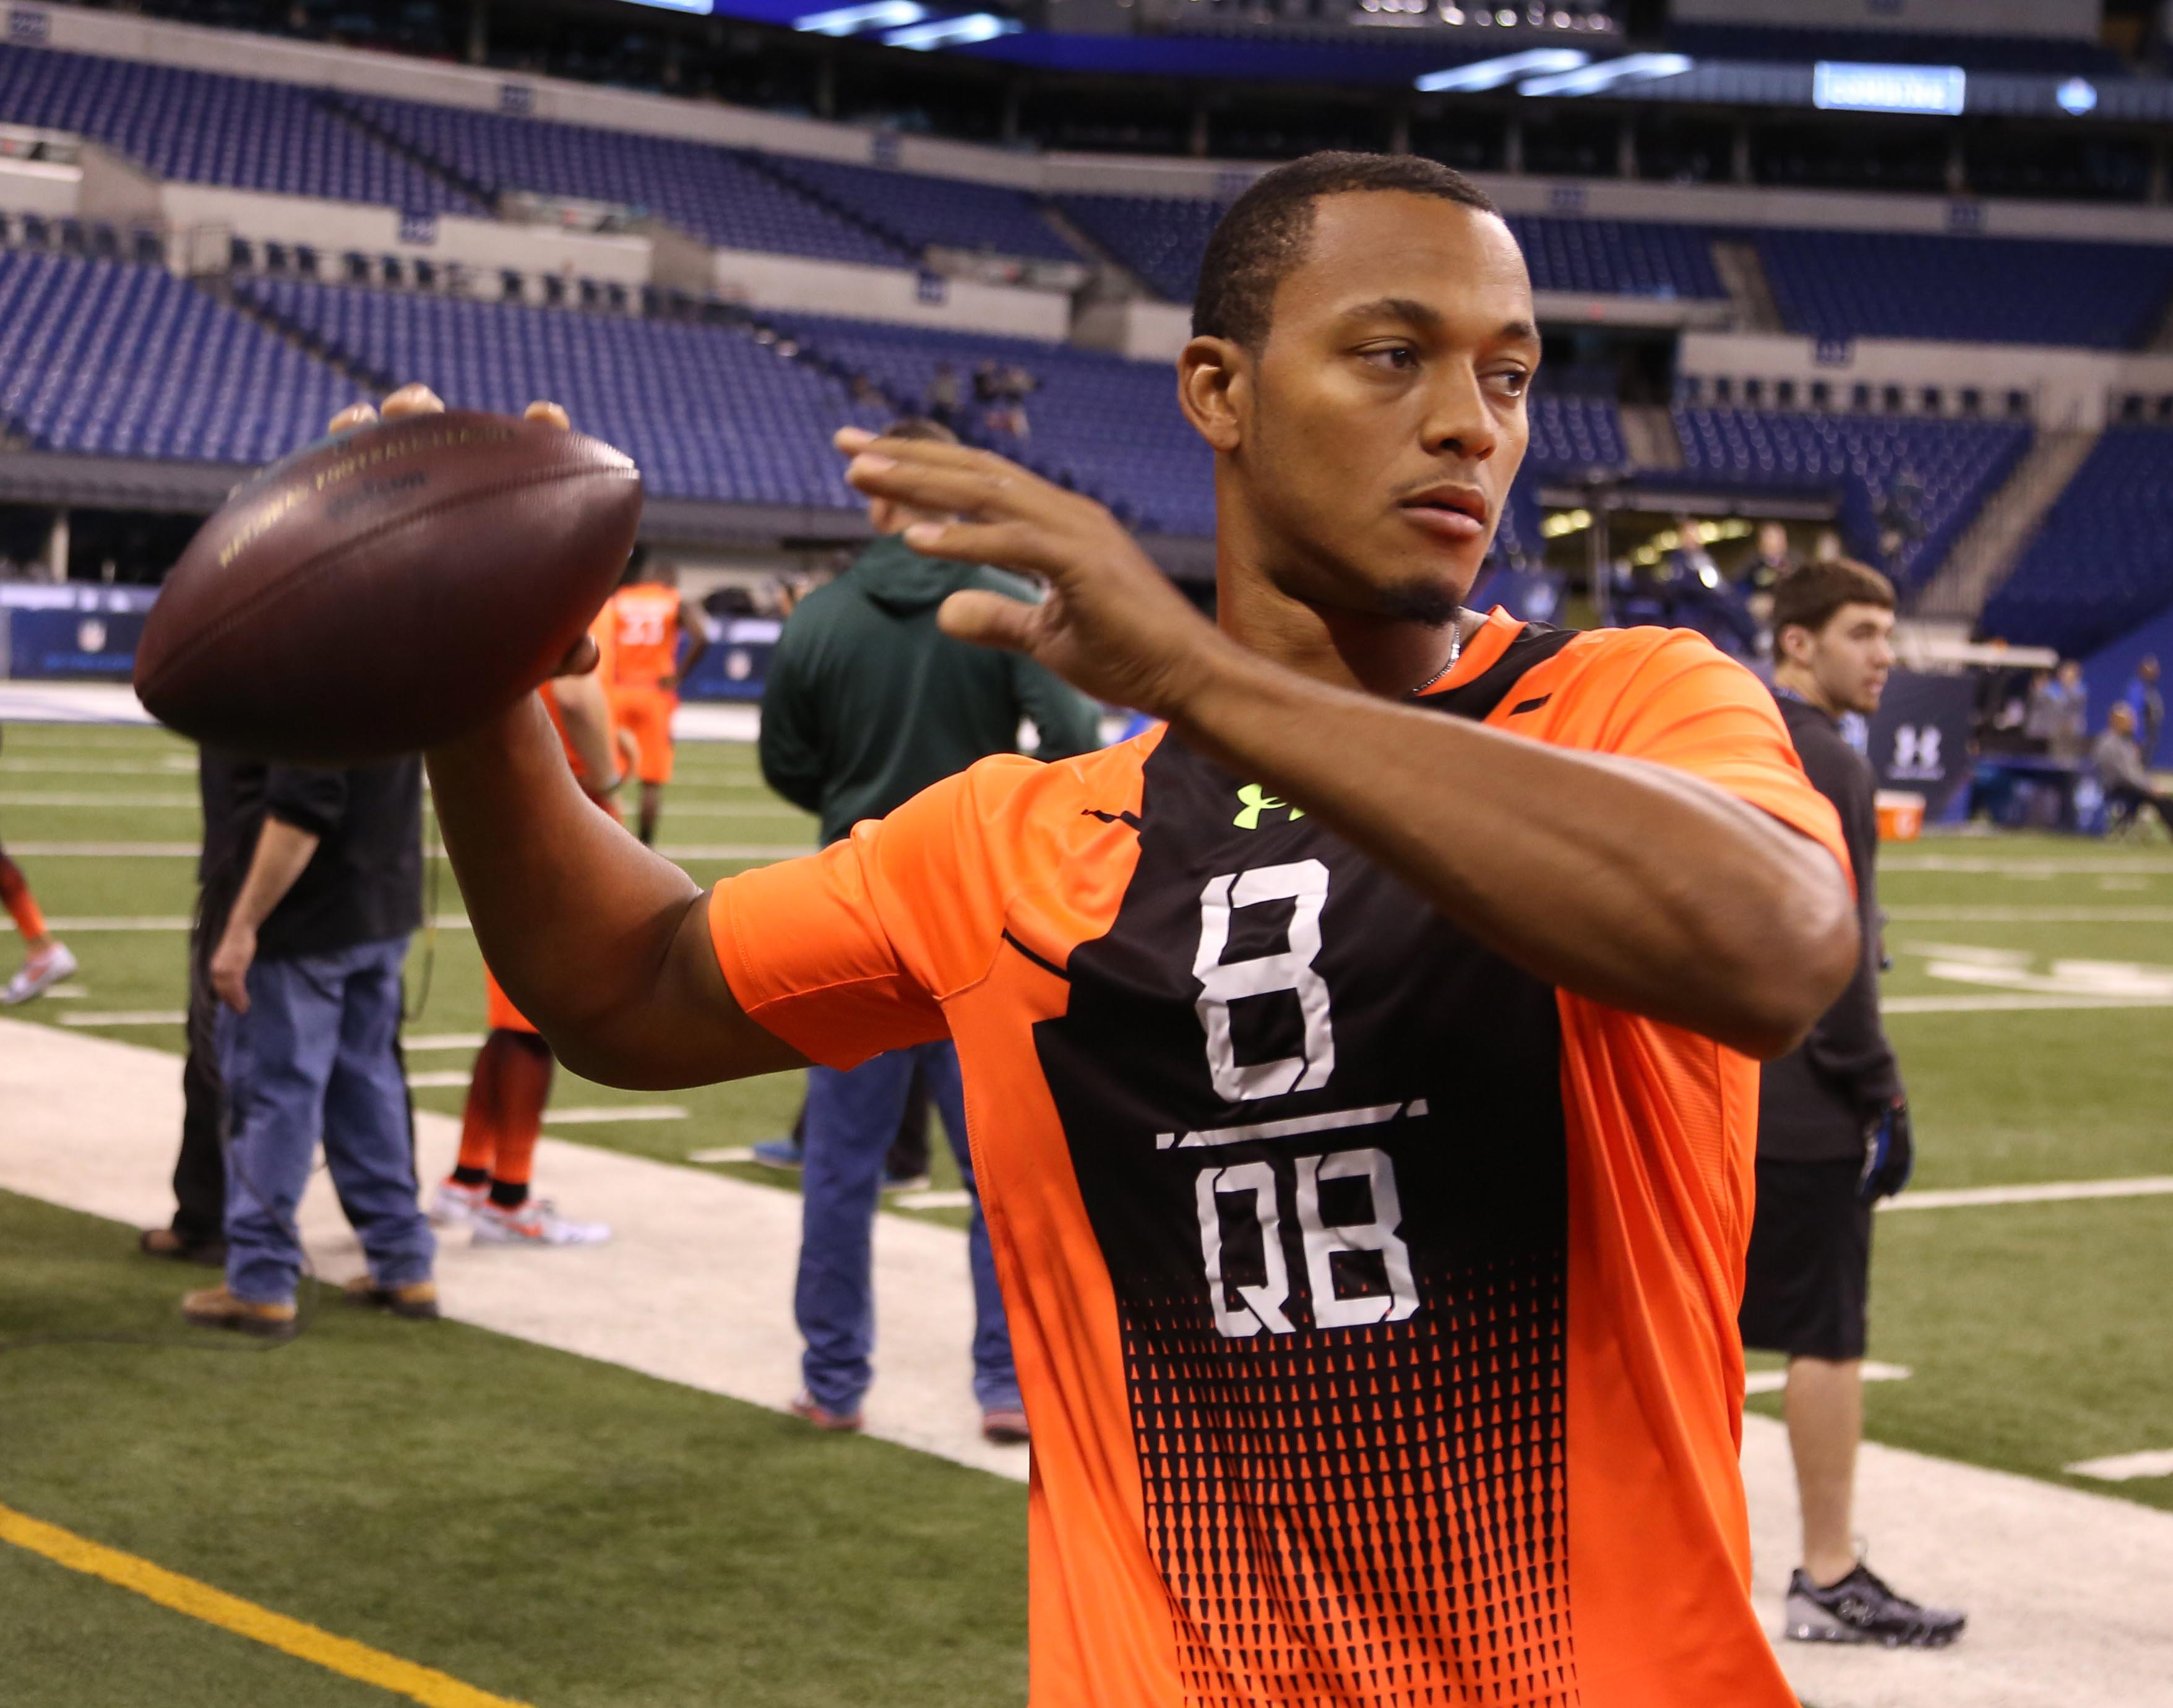 Will Brett Hundley be the third QB taken in the draft? (USA TODAY Sports)